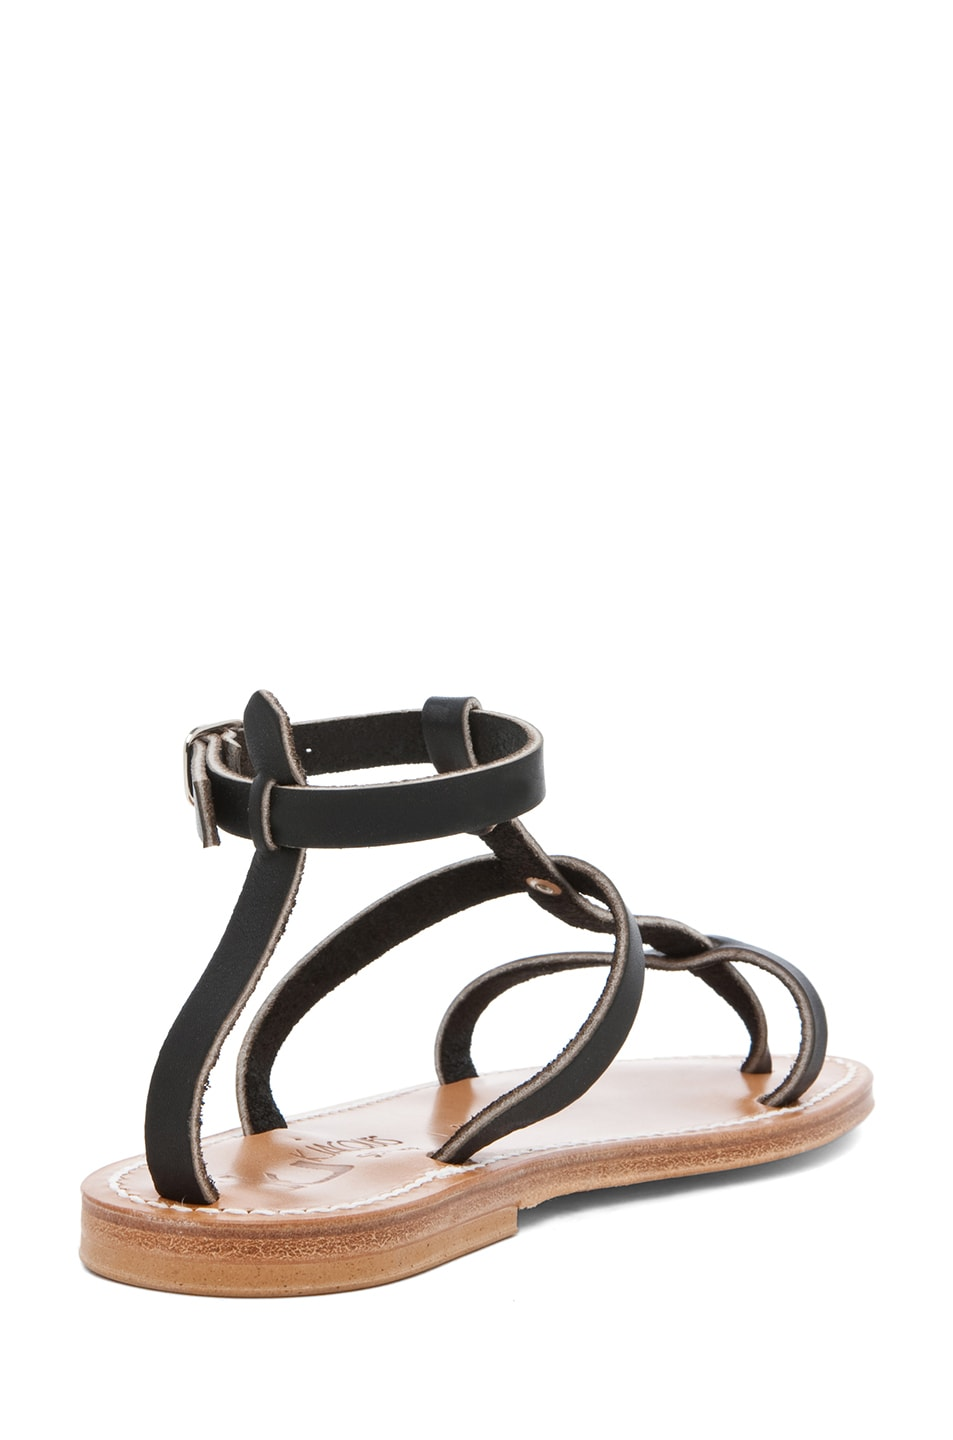 Image 3 of K Jacques Gina Gladiator Sandal in Black